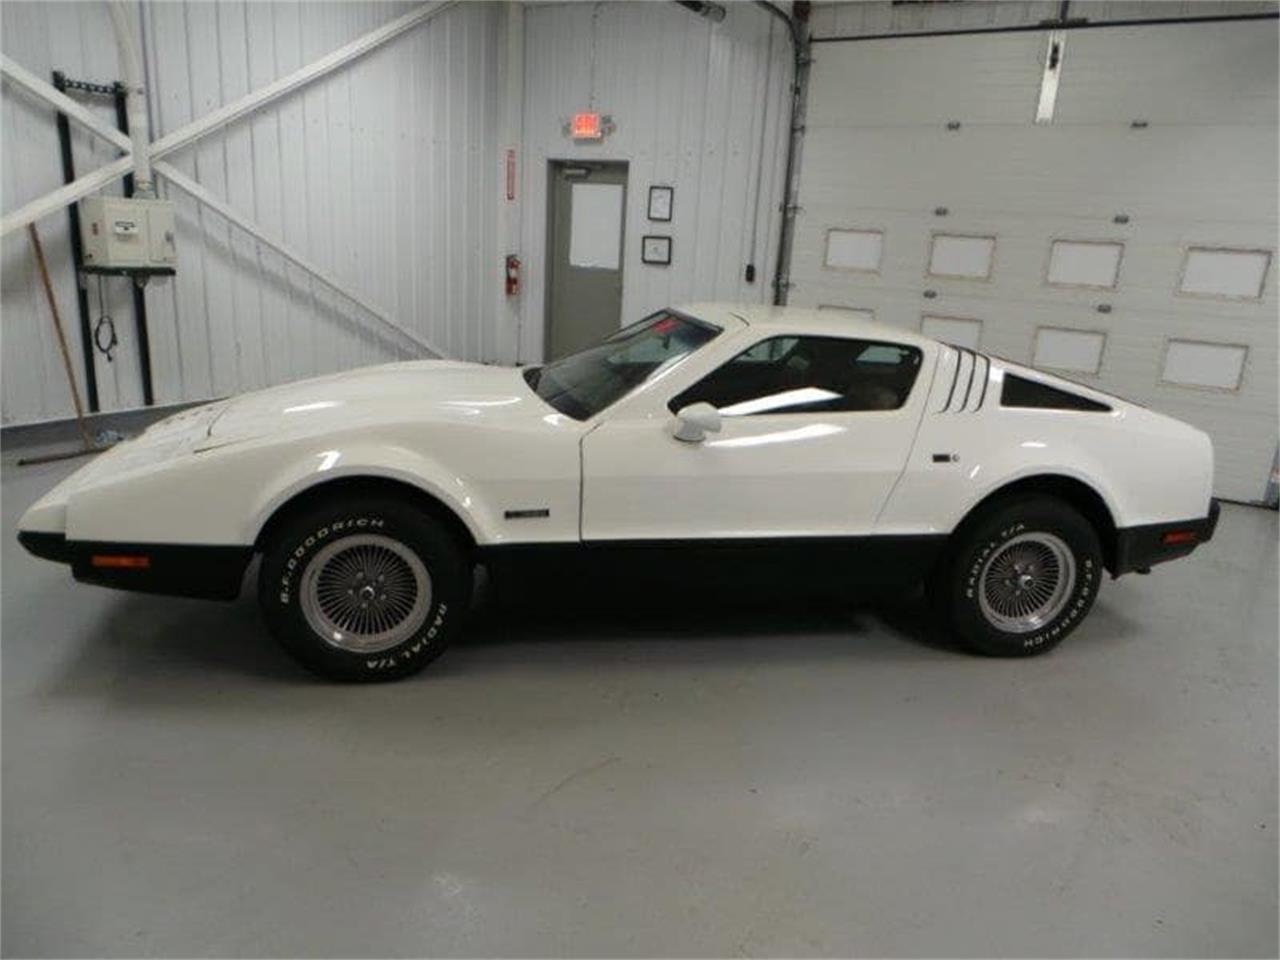 Large Picture of '75 Bricklin SV 1 located in Christiansburg Virginia - $26,700.00 - JLA1